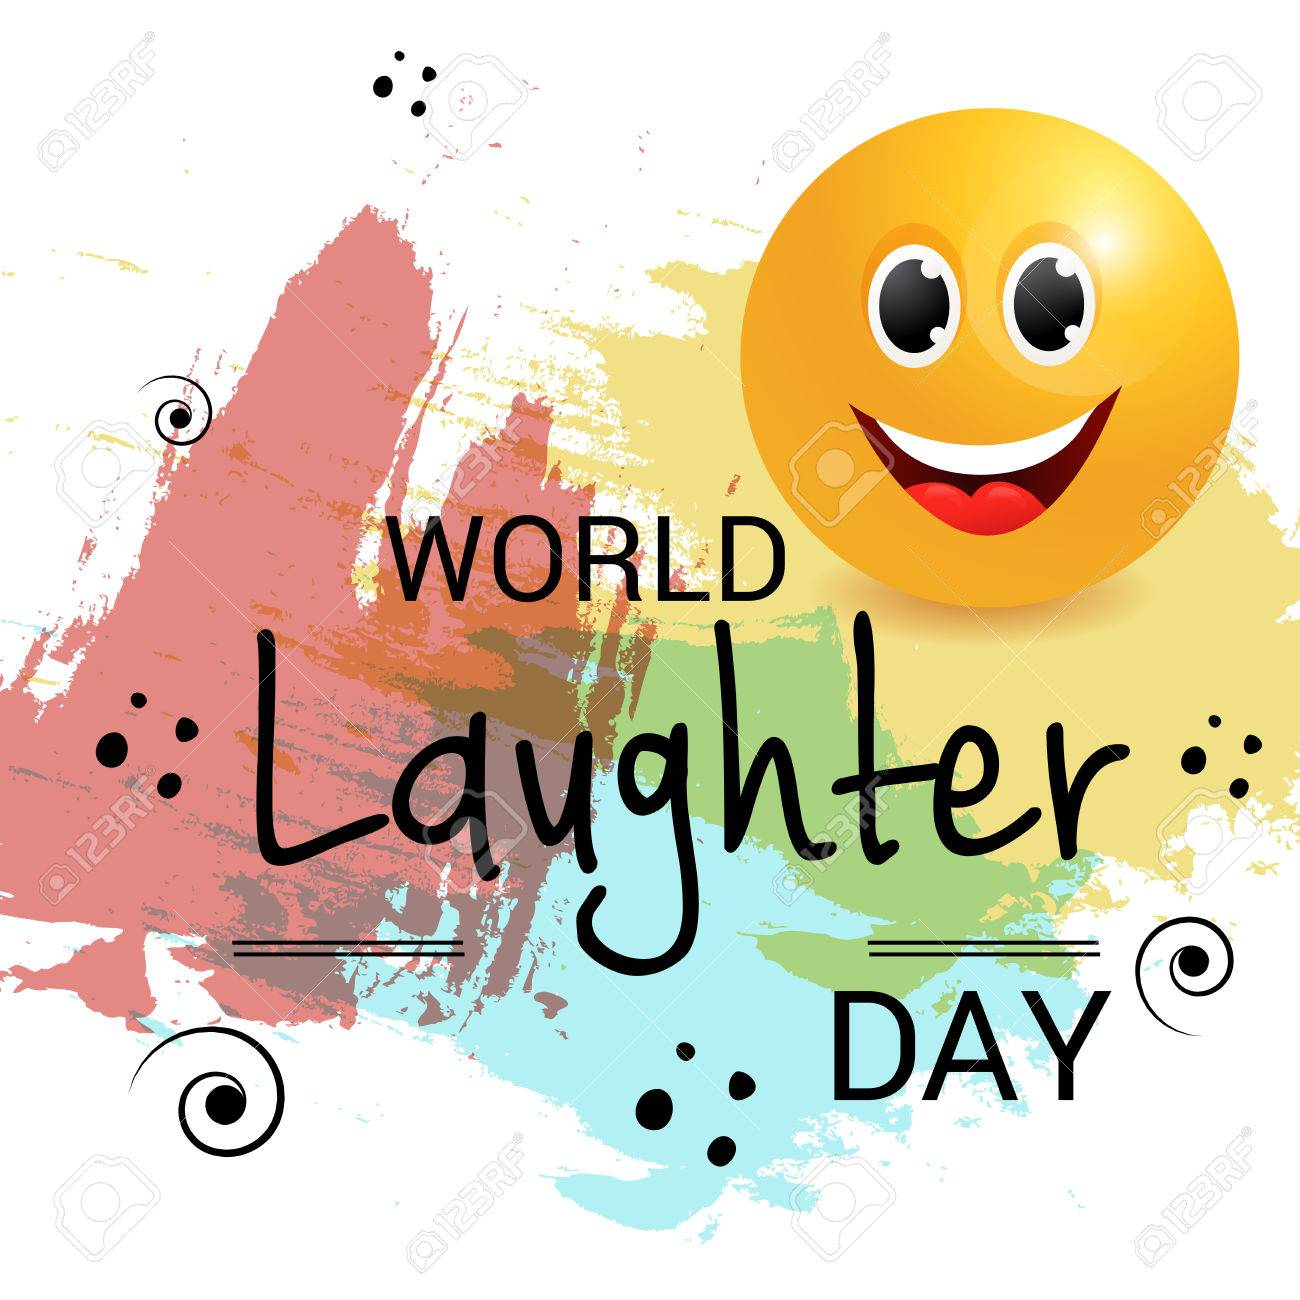 Laughter Day Cover Photos 2020